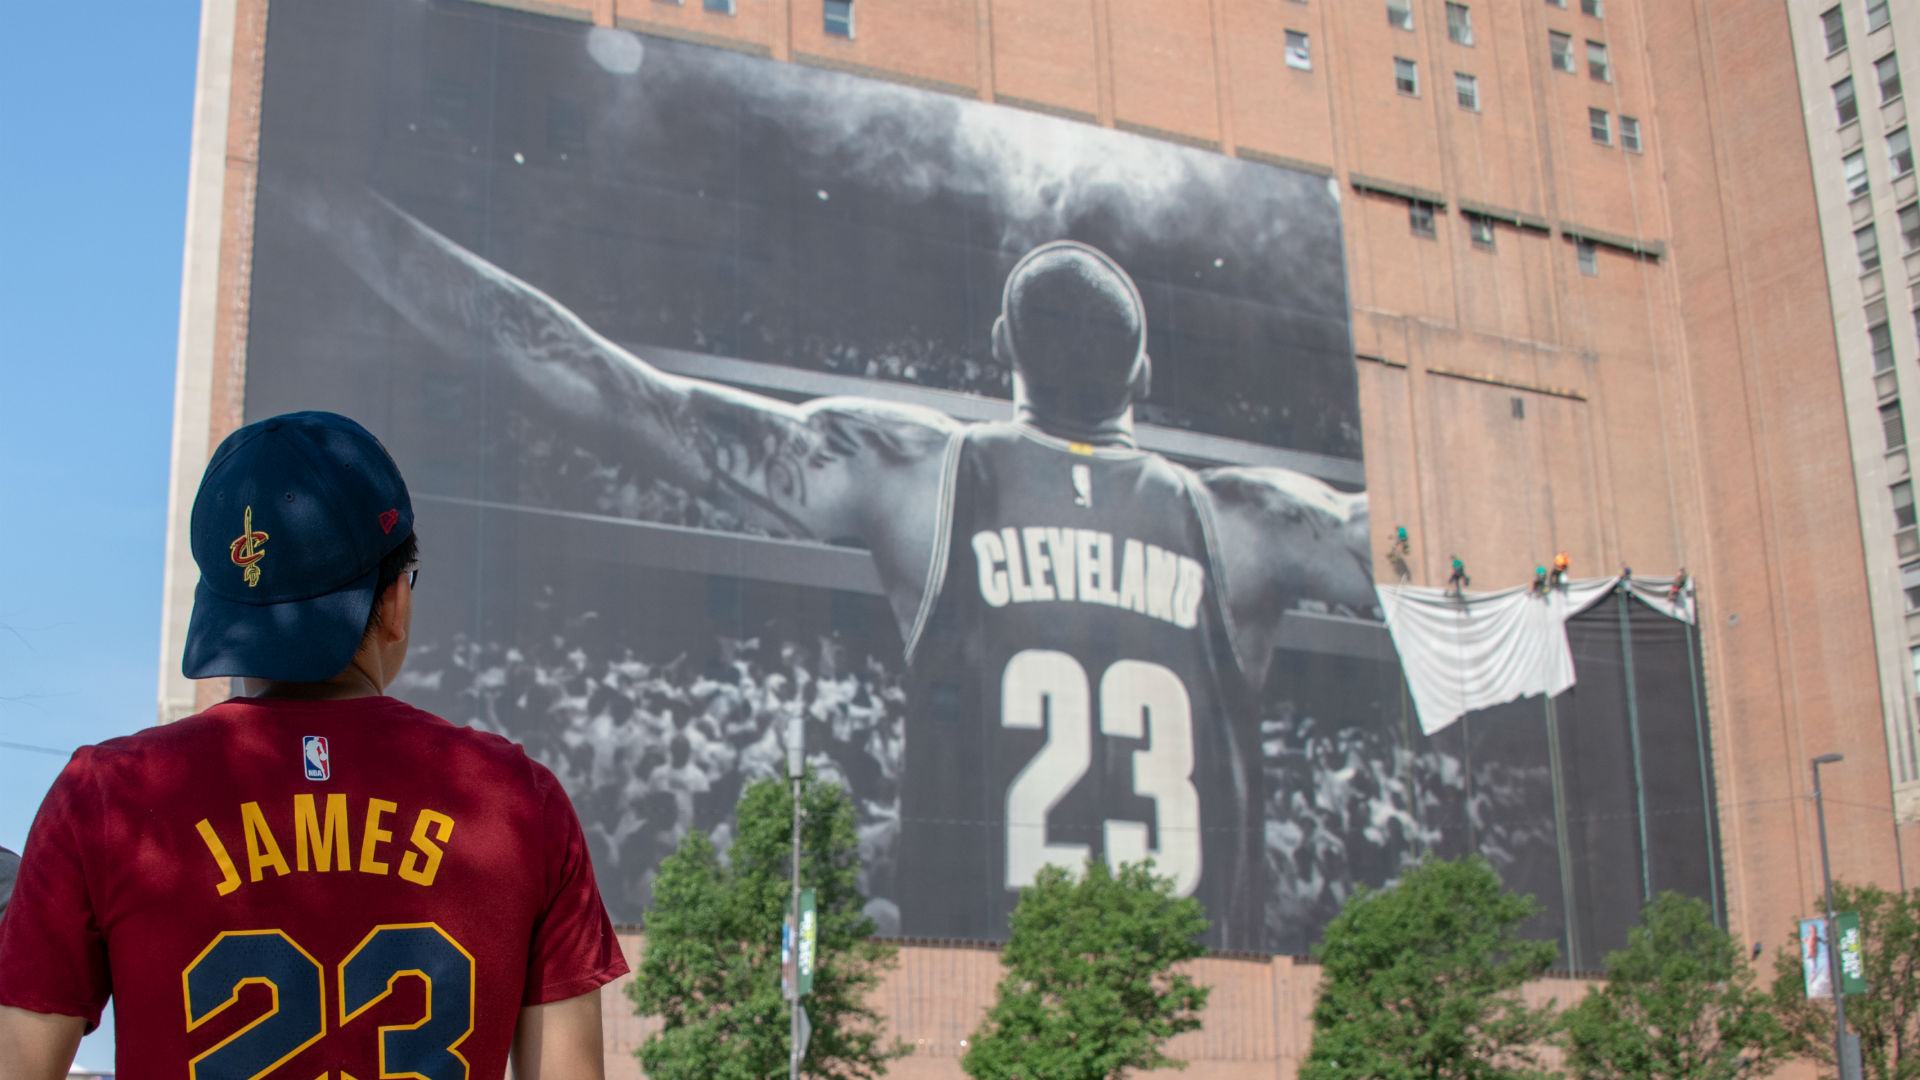 NBA players salute LeBron James for opening new school in Akron